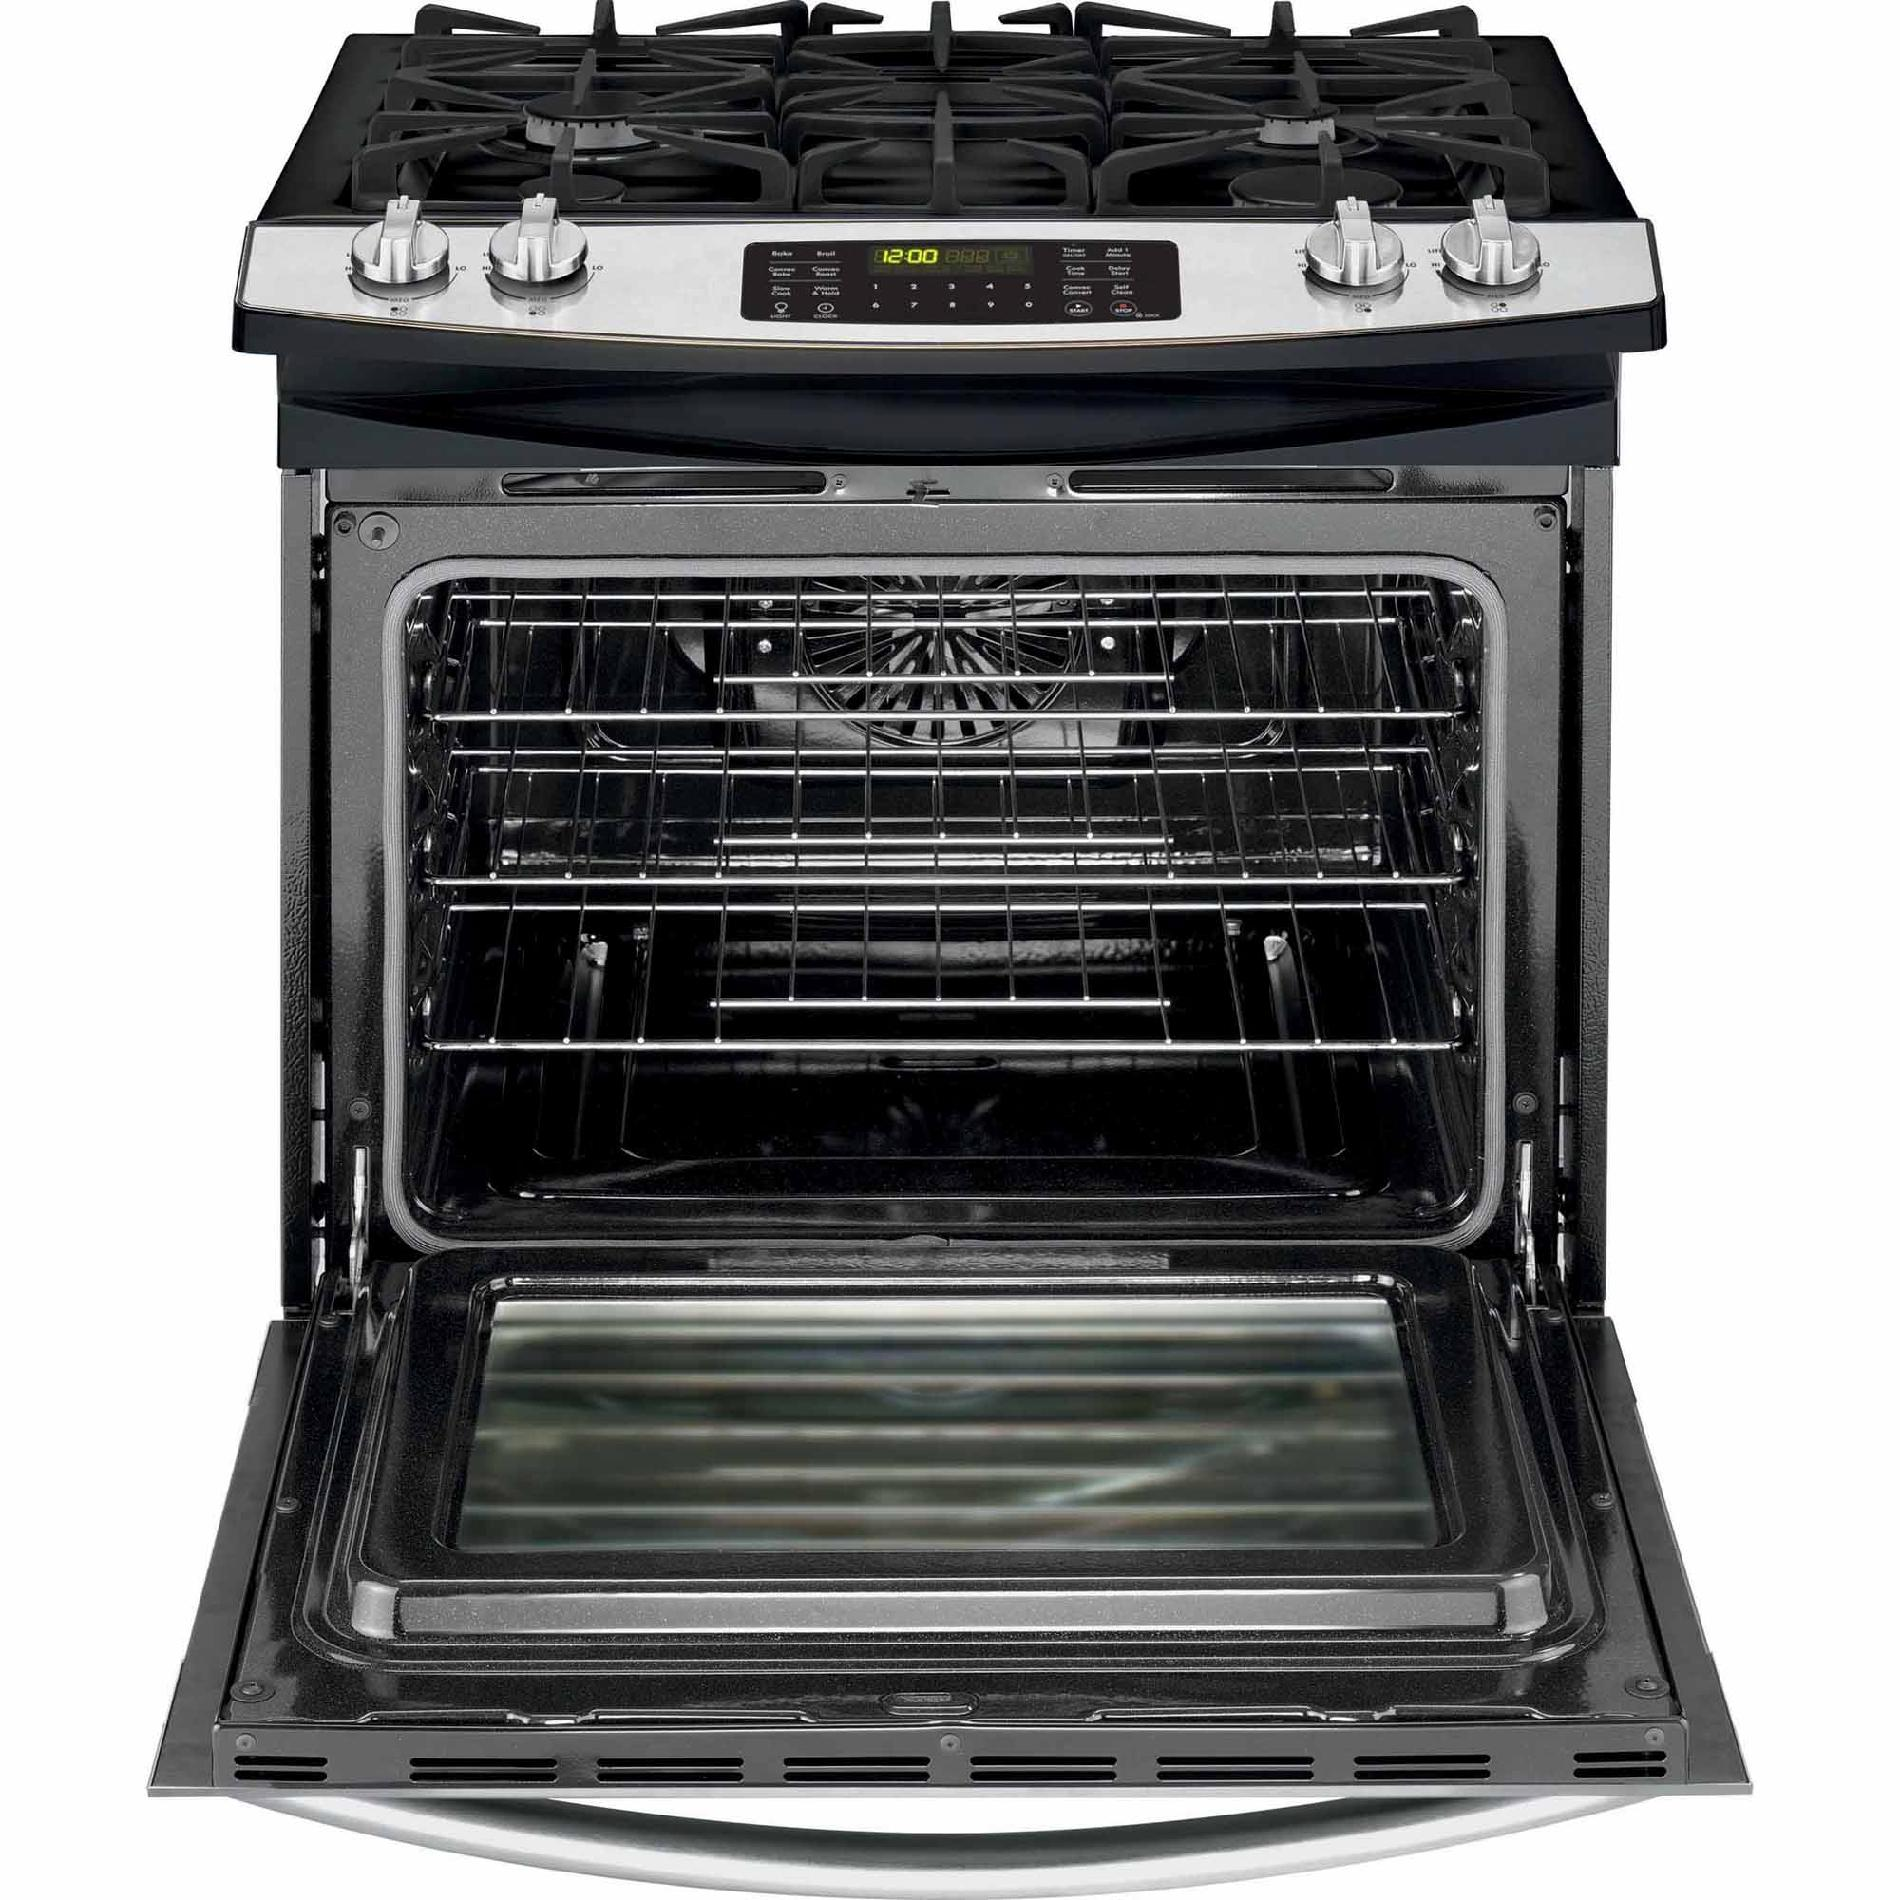 Kenmore 32613 4.5 cu. ft. Slide-In Gas Range w/Convection Cooking - Stainless Steel